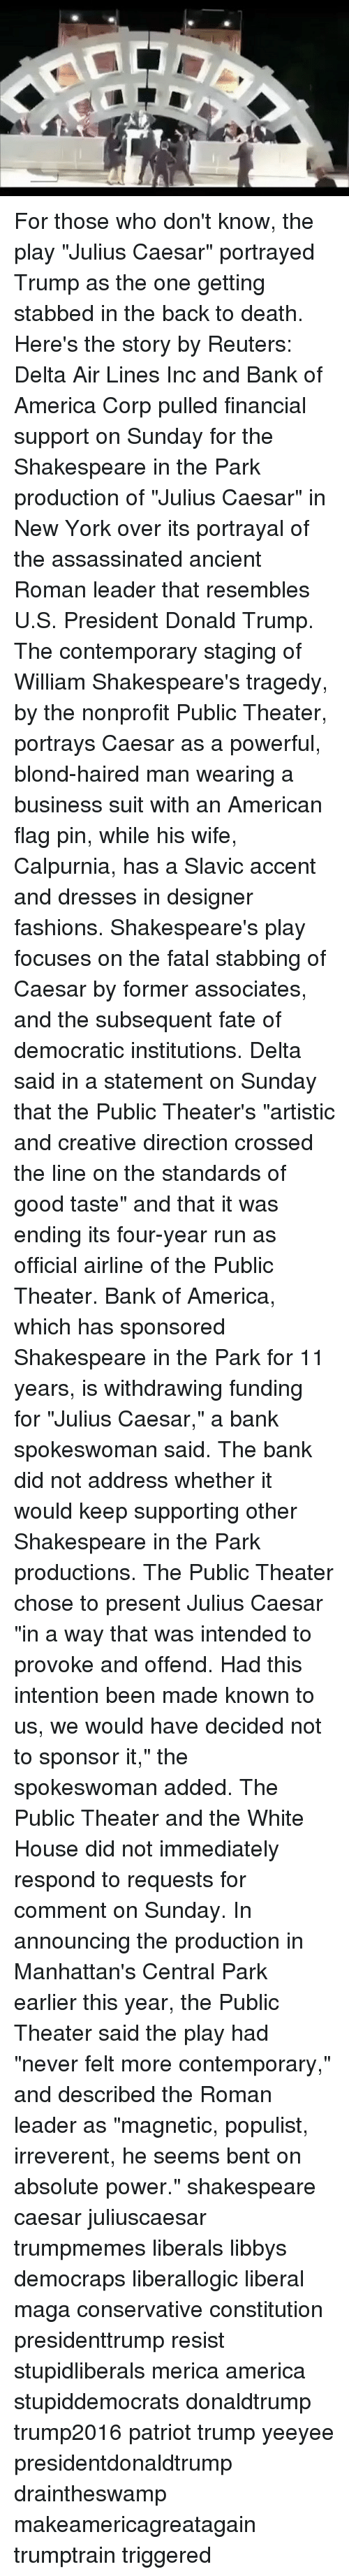 """America, Donald Trump, and New York: For those who don't know, the play """"Julius Caesar"""" portrayed Trump as the one getting stabbed in the back to death. Here's the story by Reuters: Delta Air Lines Inc and Bank of America Corp pulled financial support on Sunday for the Shakespeare in the Park production of """"Julius Caesar"""" in New York over its portrayal of the assassinated ancient Roman leader that resembles U.S. President Donald Trump. The contemporary staging of William Shakespeare's tragedy, by the nonprofit Public Theater, portrays Caesar as a powerful, blond-haired man wearing a business suit with an American flag pin, while his wife, Calpurnia, has a Slavic accent and dresses in designer fashions. Shakespeare's play focuses on the fatal stabbing of Caesar by former associates, and the subsequent fate of democratic institutions. Delta said in a statement on Sunday that the Public Theater's """"artistic and creative direction crossed the line on the standards of good taste"""" and that it was ending its four-year run as official airline of the Public Theater. Bank of America, which has sponsored Shakespeare in the Park for 11 years, is withdrawing funding for """"Julius Caesar,"""" a bank spokeswoman said. The bank did not address whether it would keep supporting other Shakespeare in the Park productions. The Public Theater chose to present Julius Caesar """"in a way that was intended to provoke and offend. Had this intention been made known to us, we would have decided not to sponsor it,"""" the spokeswoman added. The Public Theater and the White House did not immediately respond to requests for comment on Sunday. In announcing the production in Manhattan's Central Park earlier this year, the Public Theater said the play had """"never felt more contemporary,"""" and described the Roman leader as """"magnetic, populist, irreverent, he seems bent on absolute power."""" shakespeare caesar juliuscaesar trumpmemes liberals libbys democraps liberallogic liberal maga conservative constitution presi"""